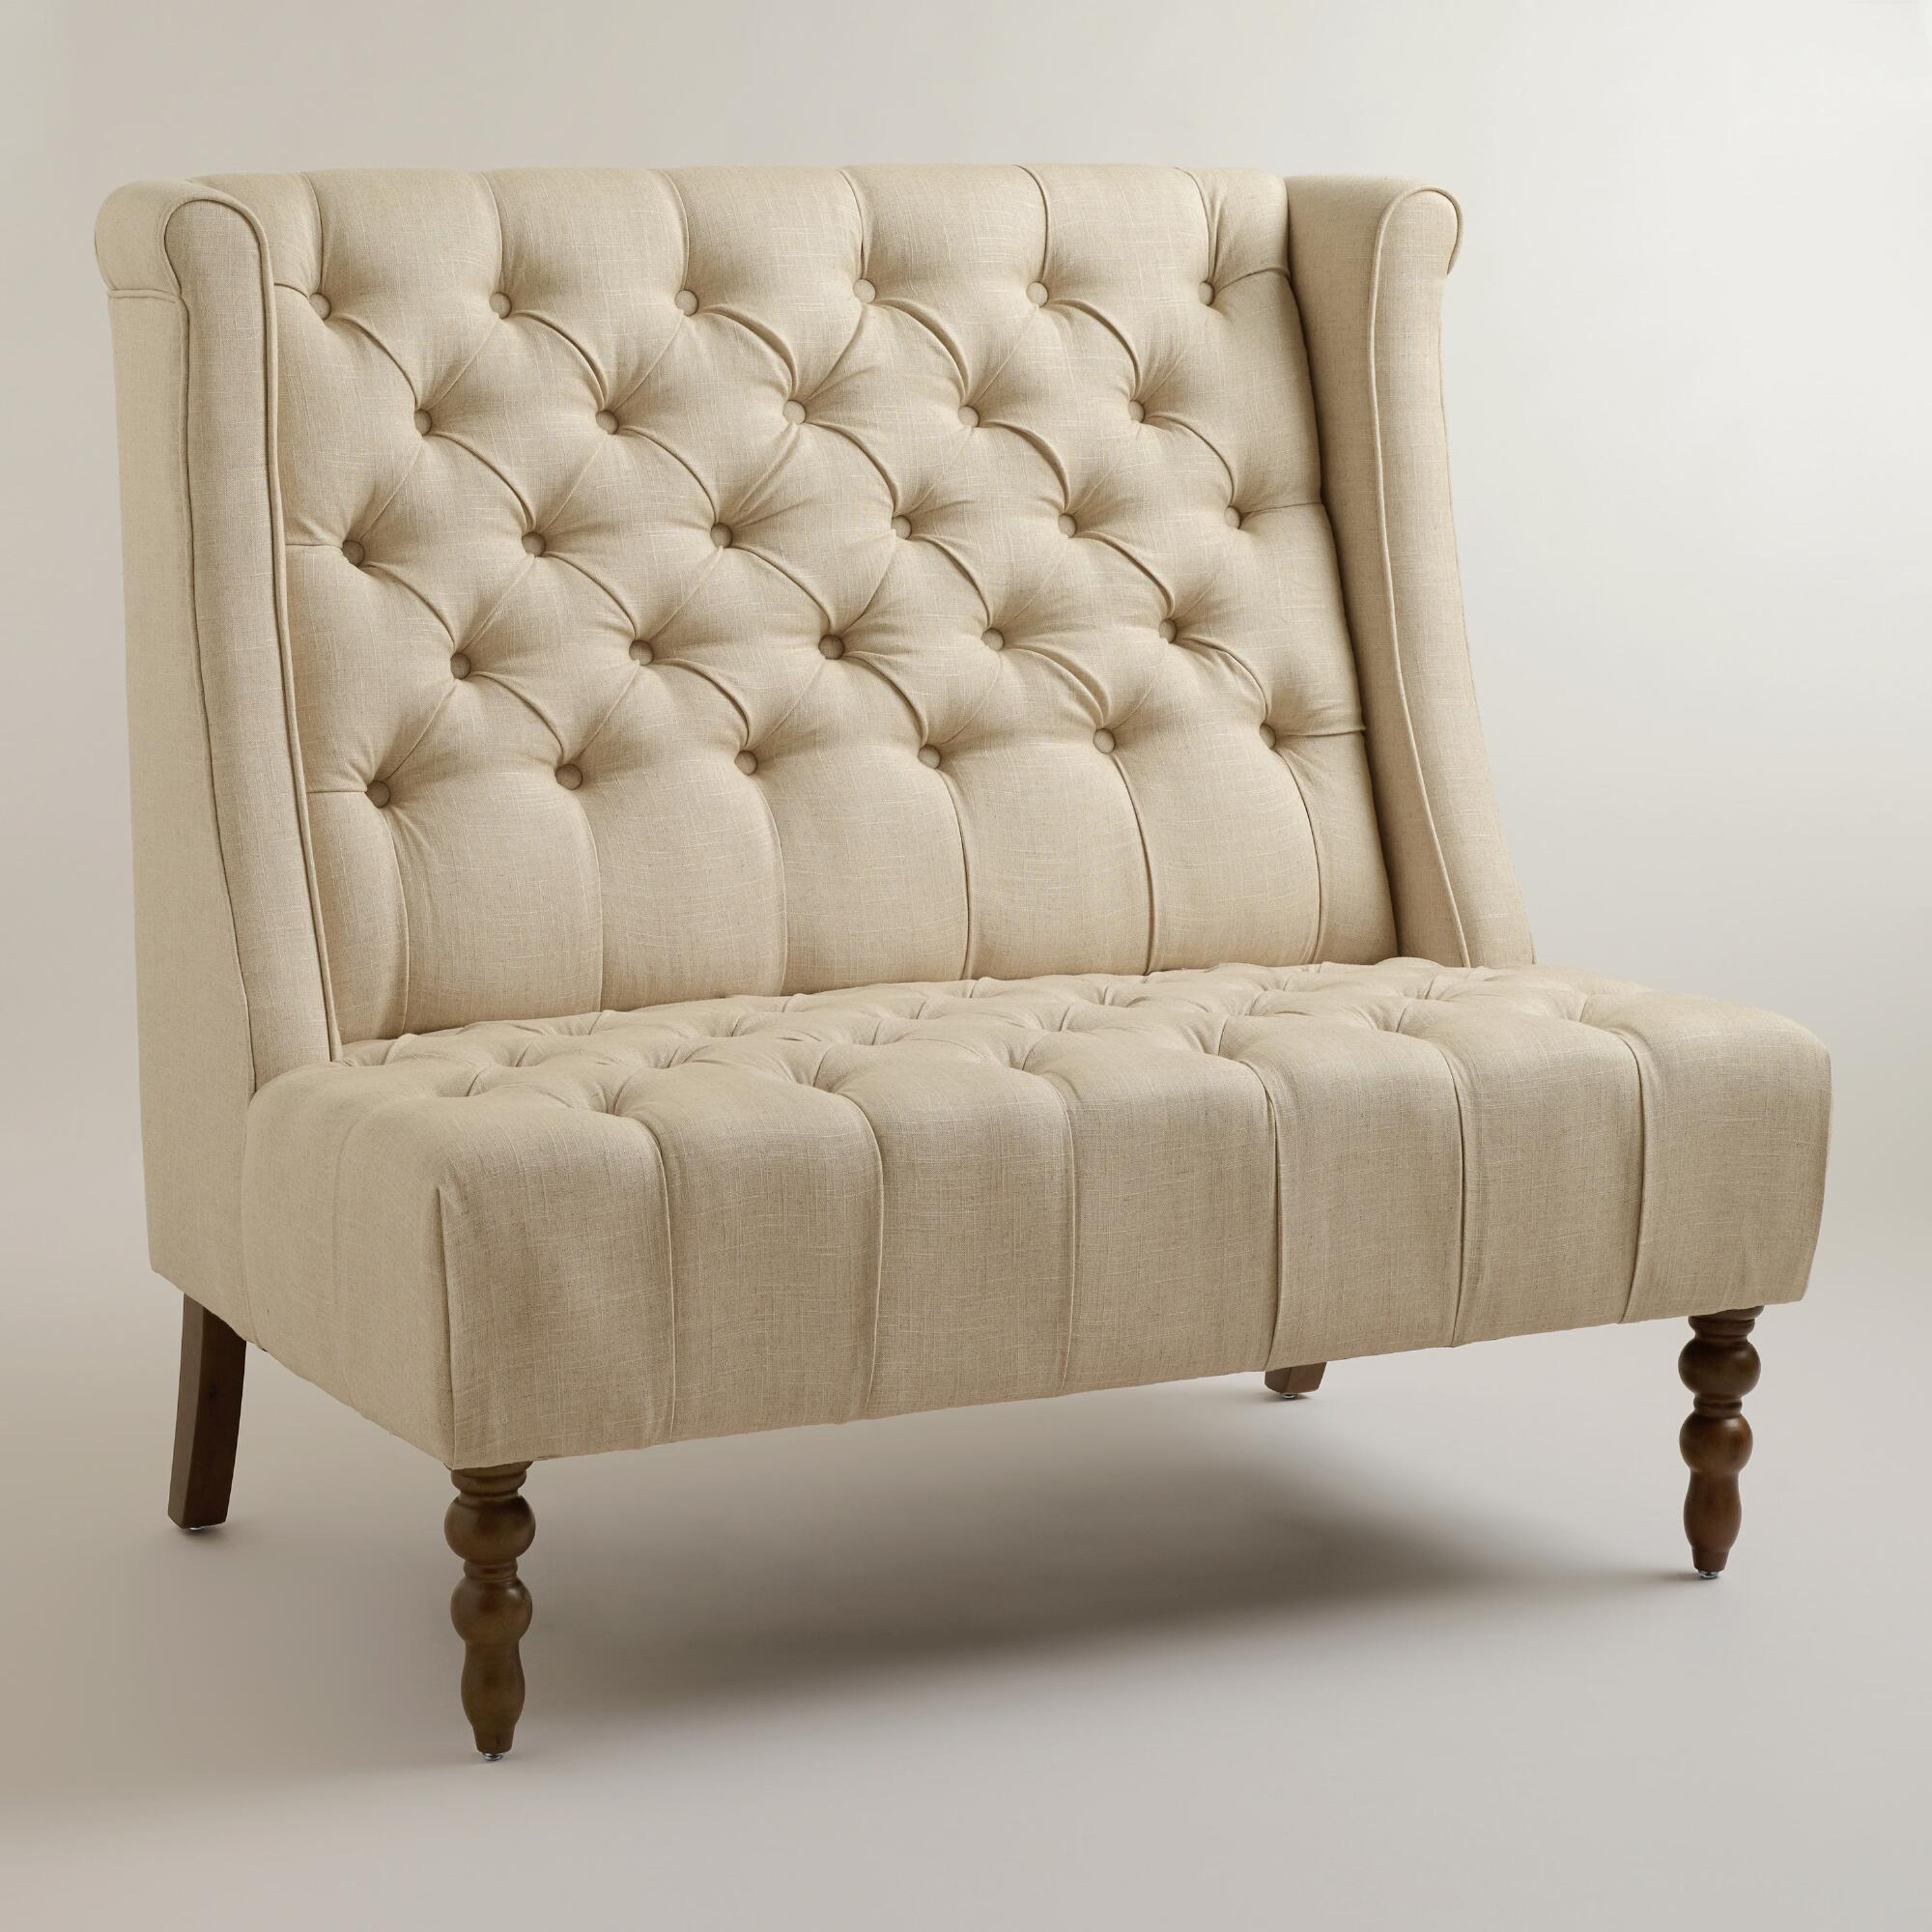 free tufted product nolie winged garden christopher loveseat overstock knight velvet back today high home shipping by